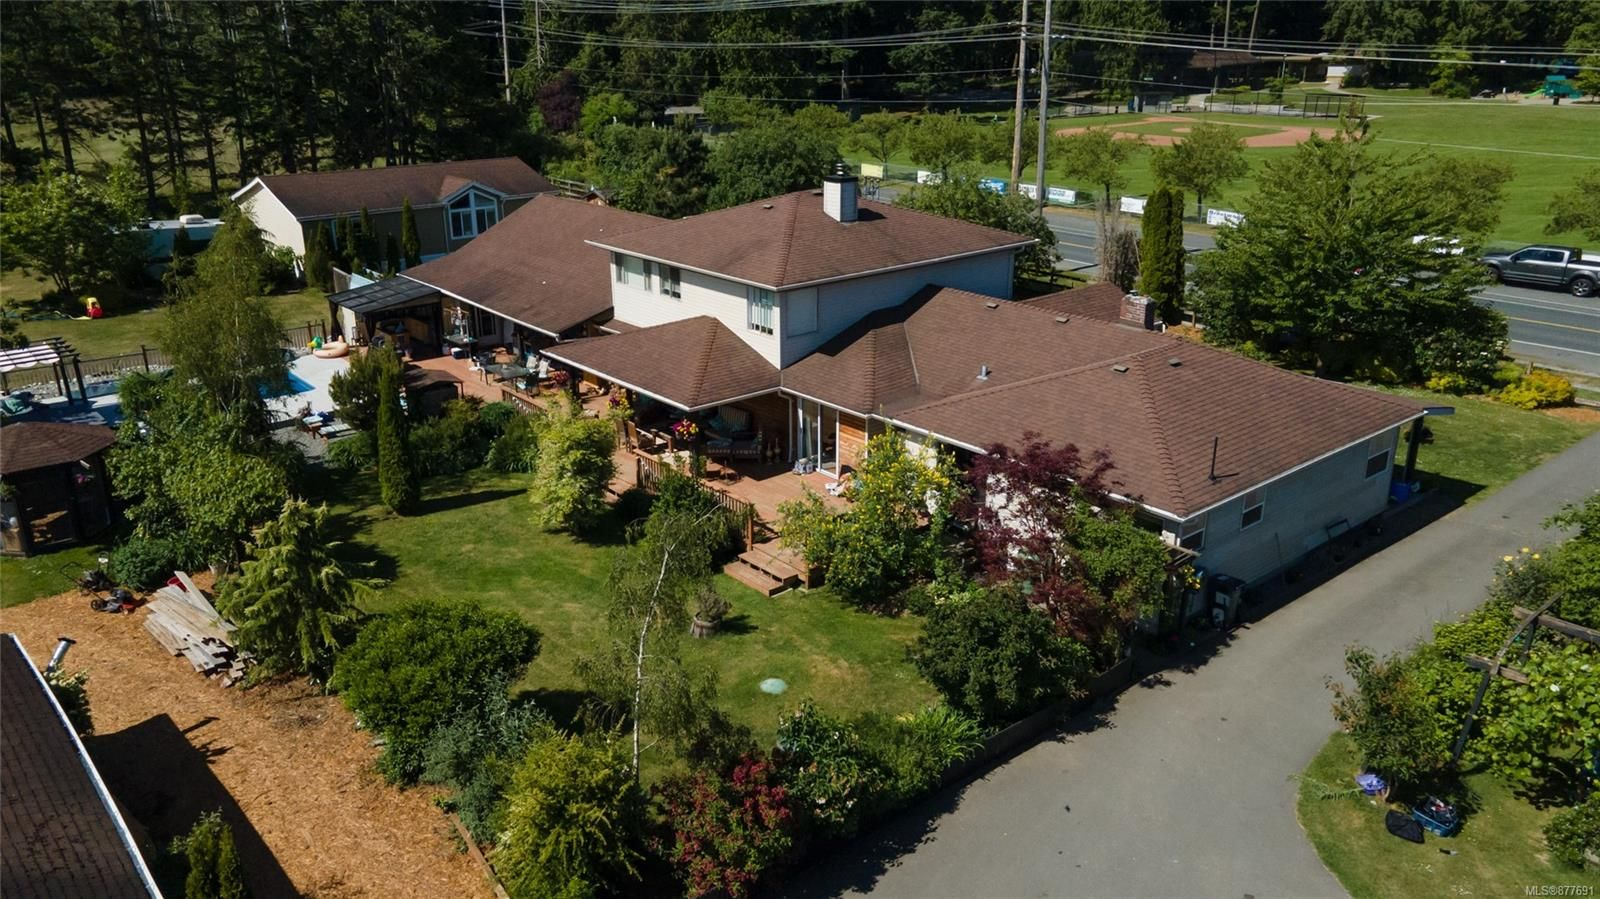 Main Photo: 7485 Wallace Dr in : CS Saanichton House for sale (Central Saanich)  : MLS®# 877691